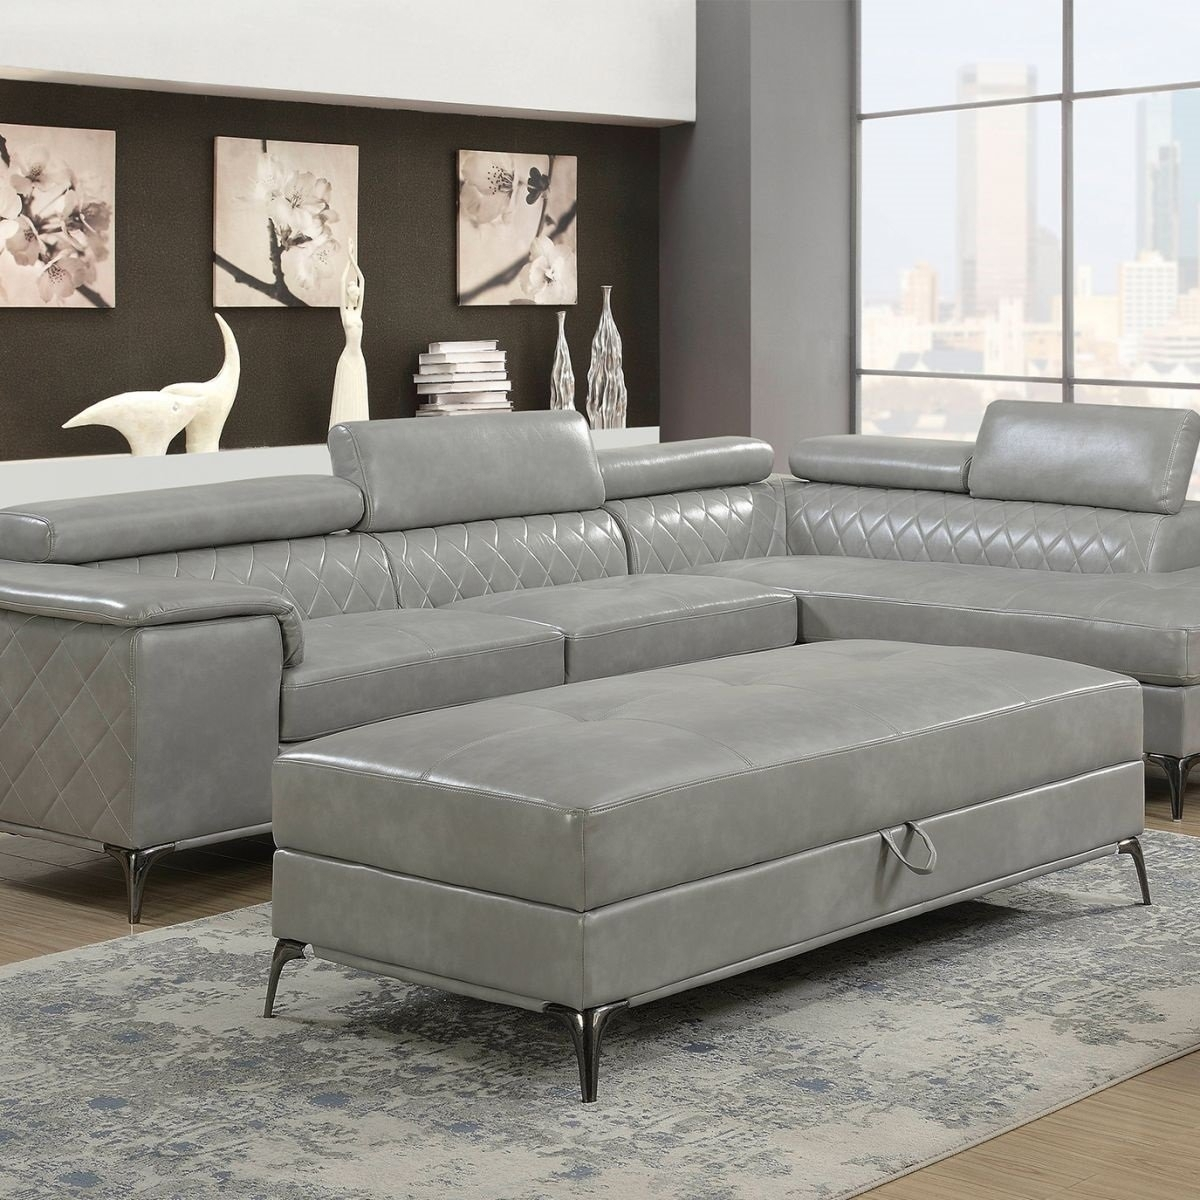 Worthington Grey 2 Pc Sectional & Ottoman | Badcock & More With Cosmos Grey 2 Piece Sectionals With Raf Chaise (Image 25 of 25)